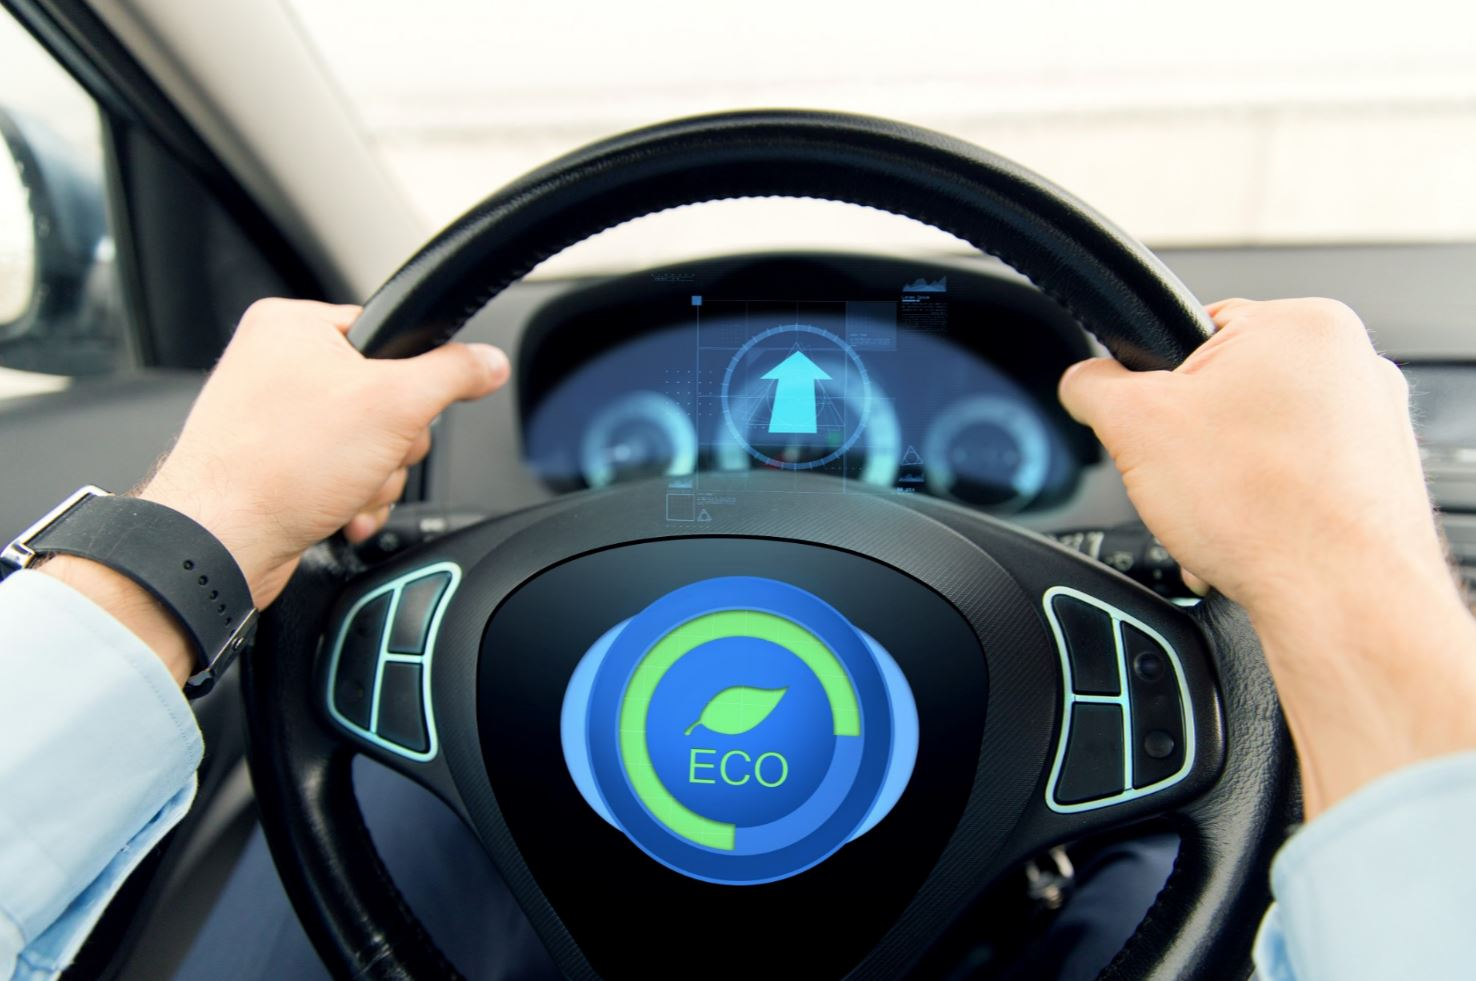 Eco sign on a steering wheel.-1